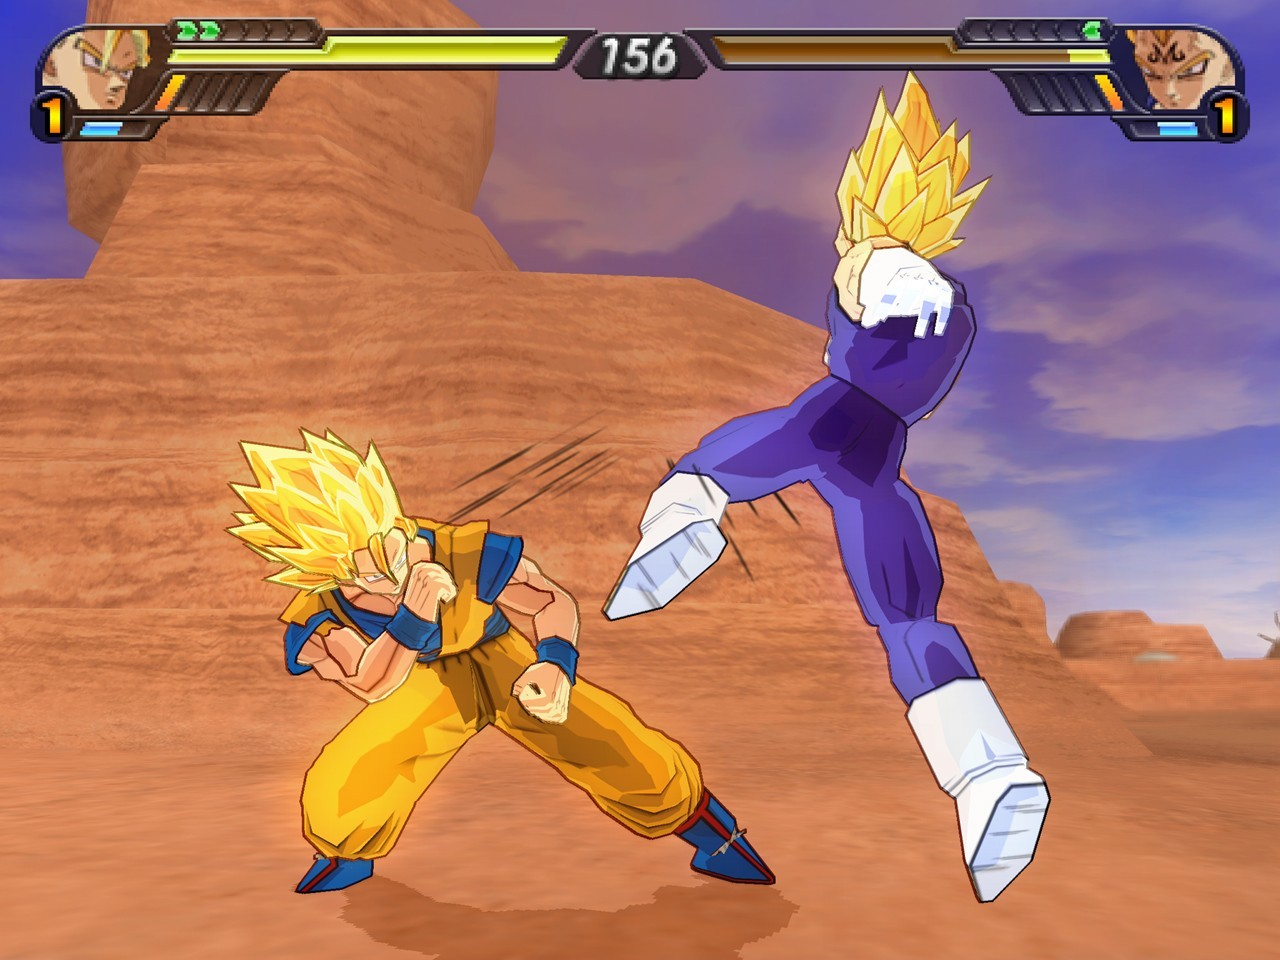 Dragon ball z online games download